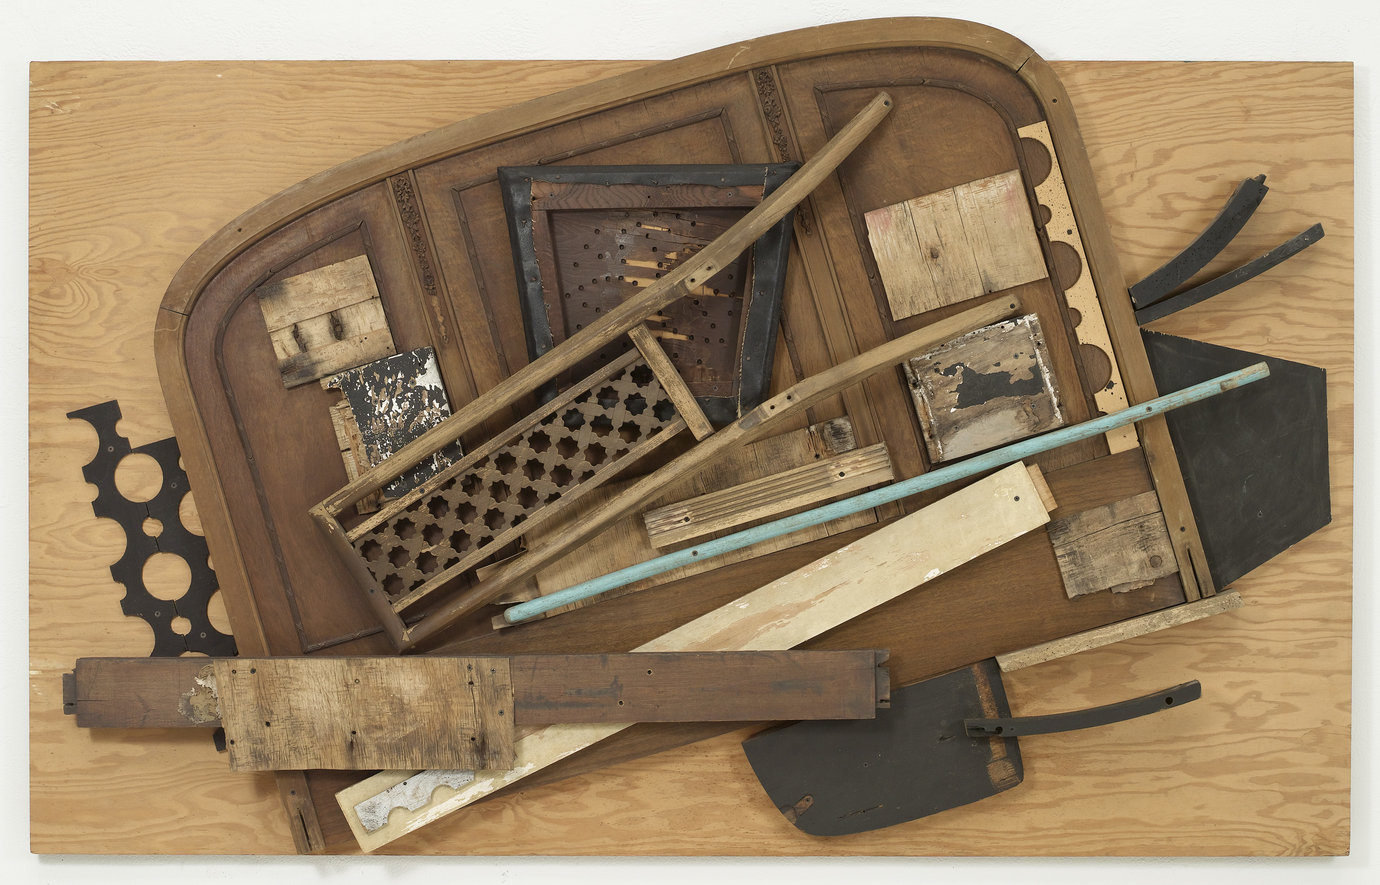 ", 1985. Paint, vinyl and wood on board, 51"" x 81-1/4"" x 7-1/2"" (129.5 cm x 203.8 cm x 19 cm)."